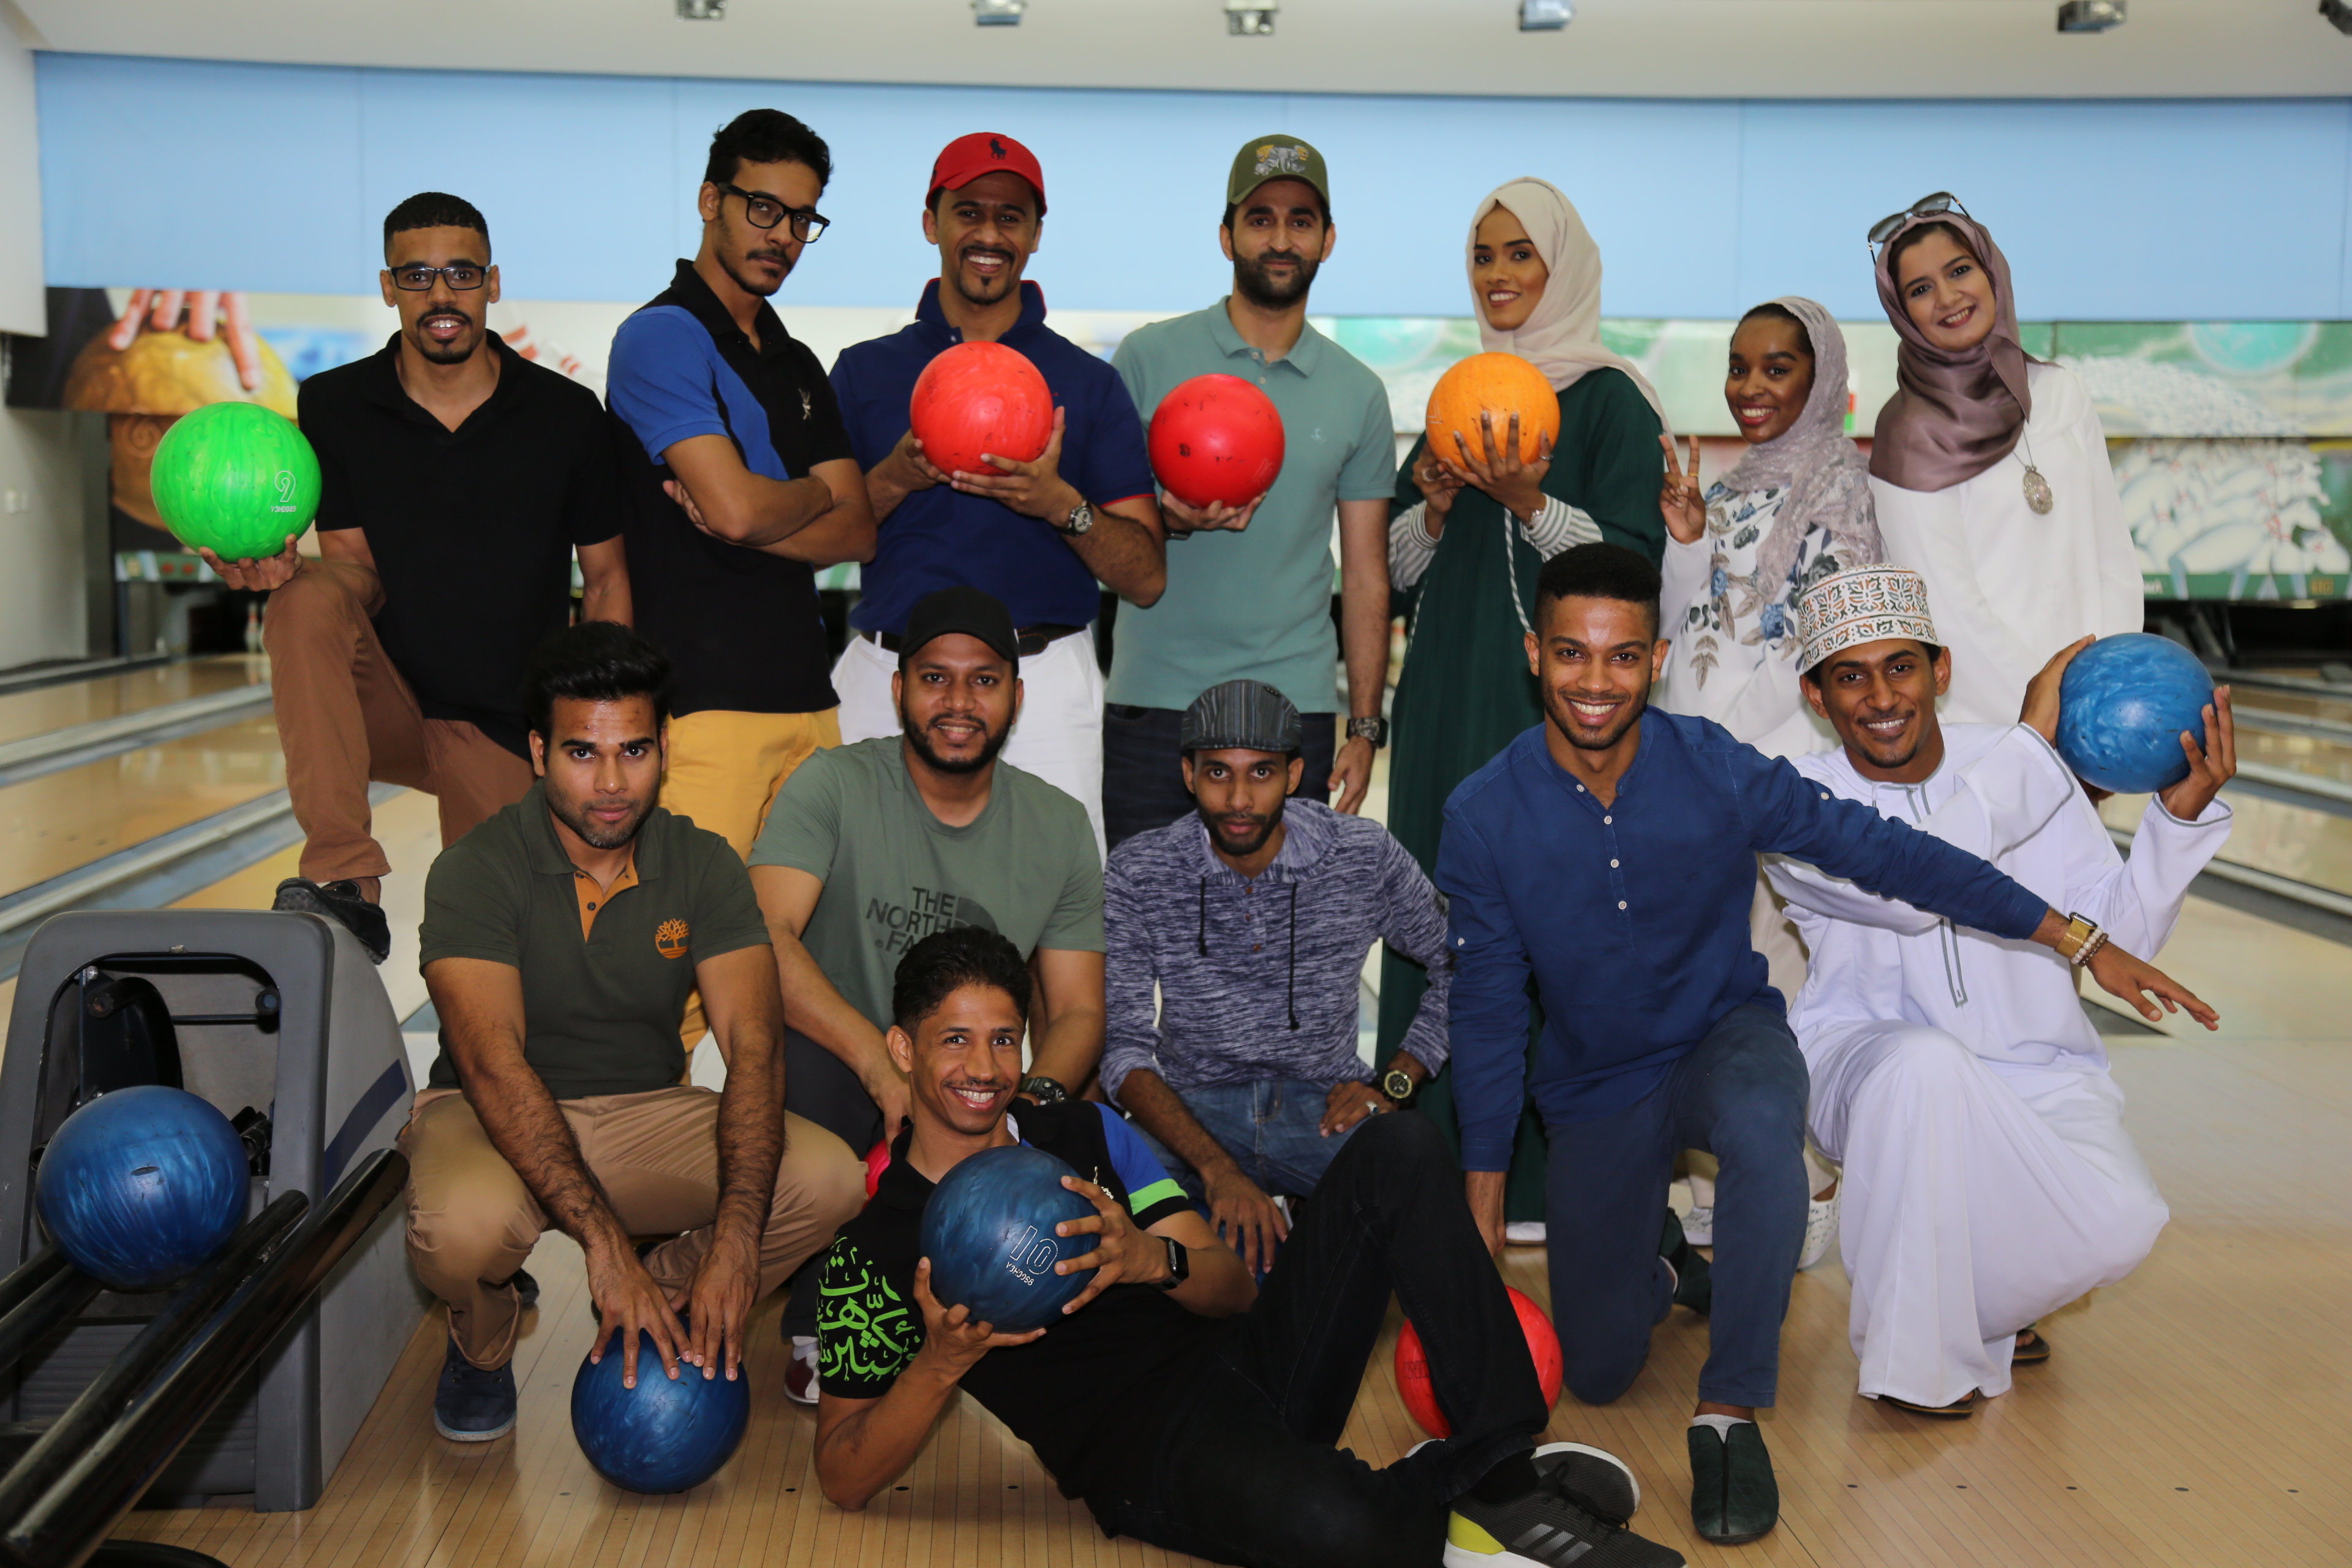 Knowledge Oman hosts Team-Building activities for the Community